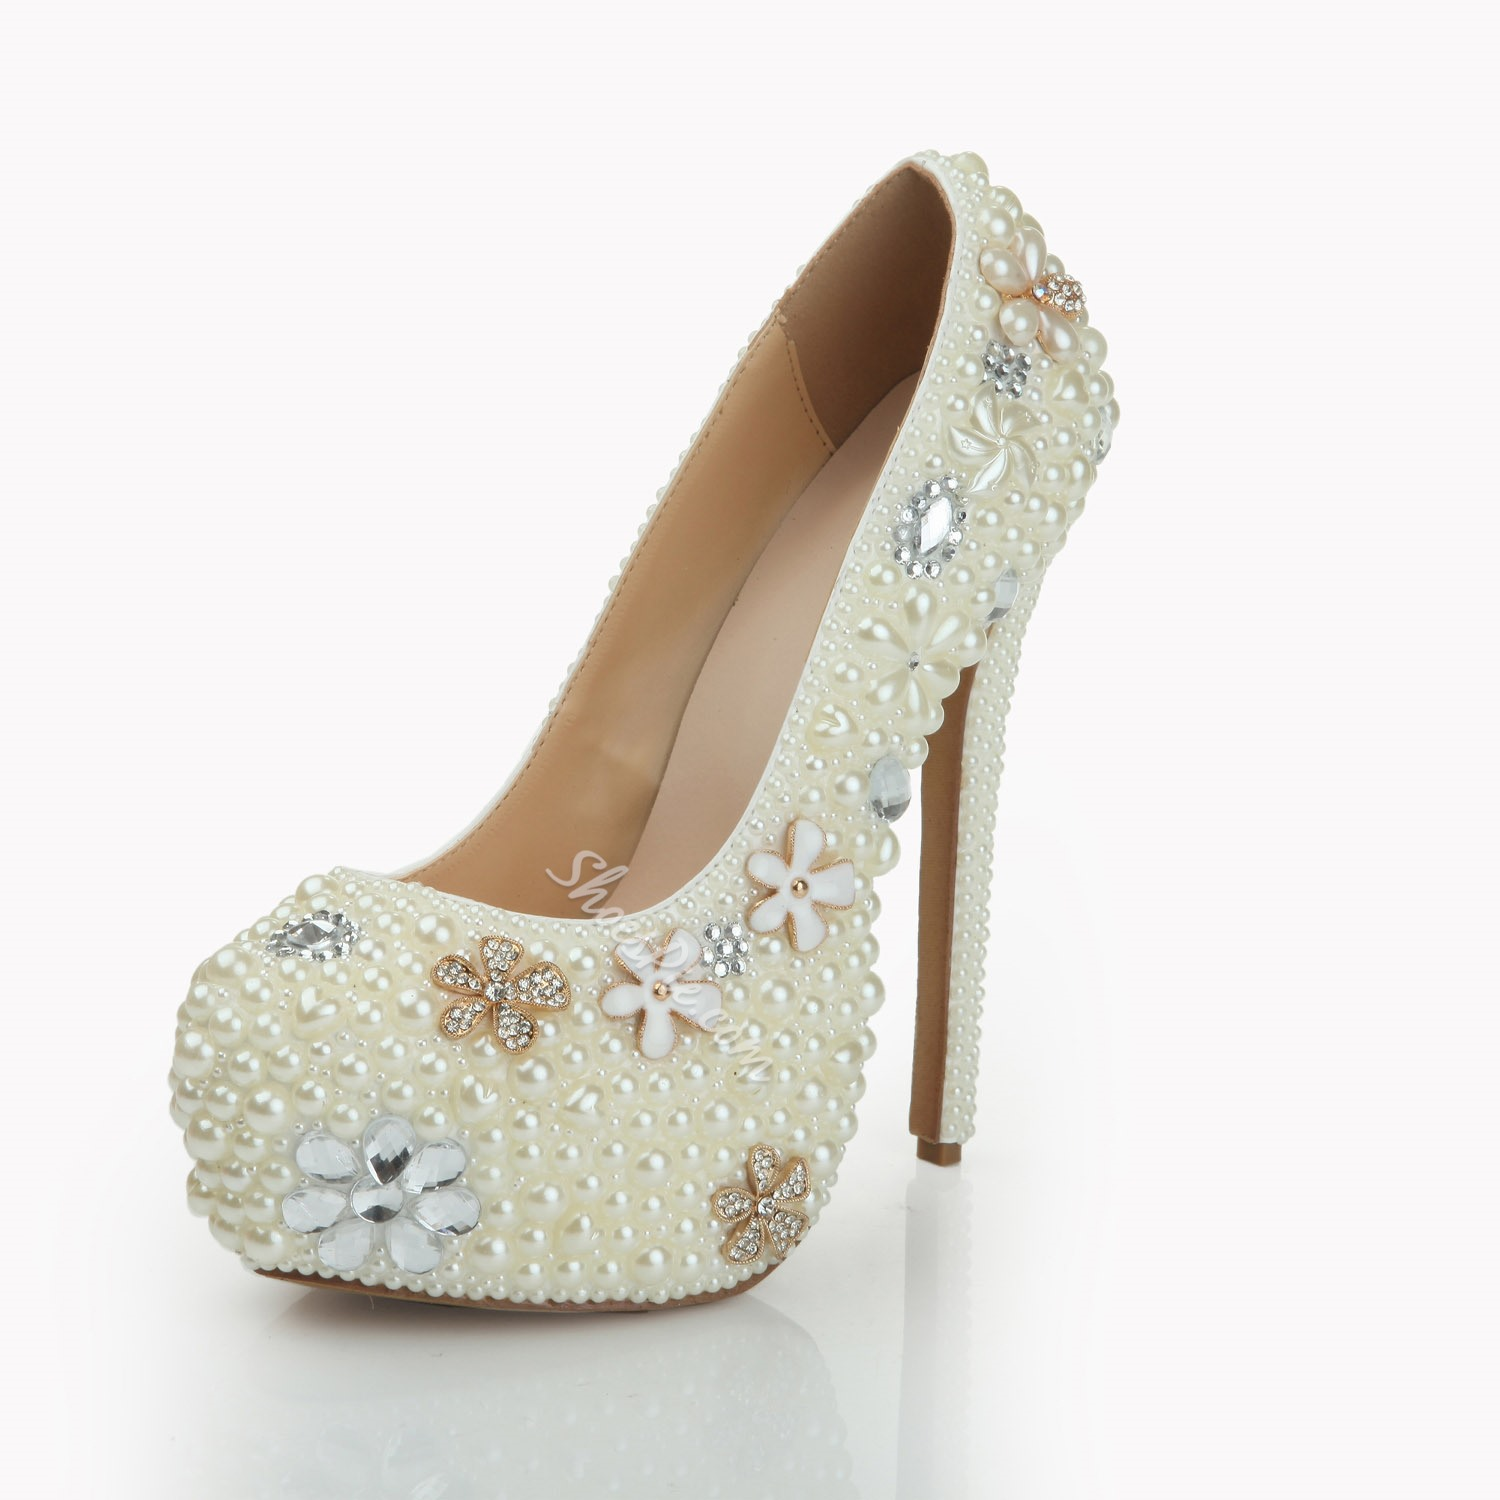 Shoespie Rhinestone Beads Wedding Stiletto Heel Platform Heels